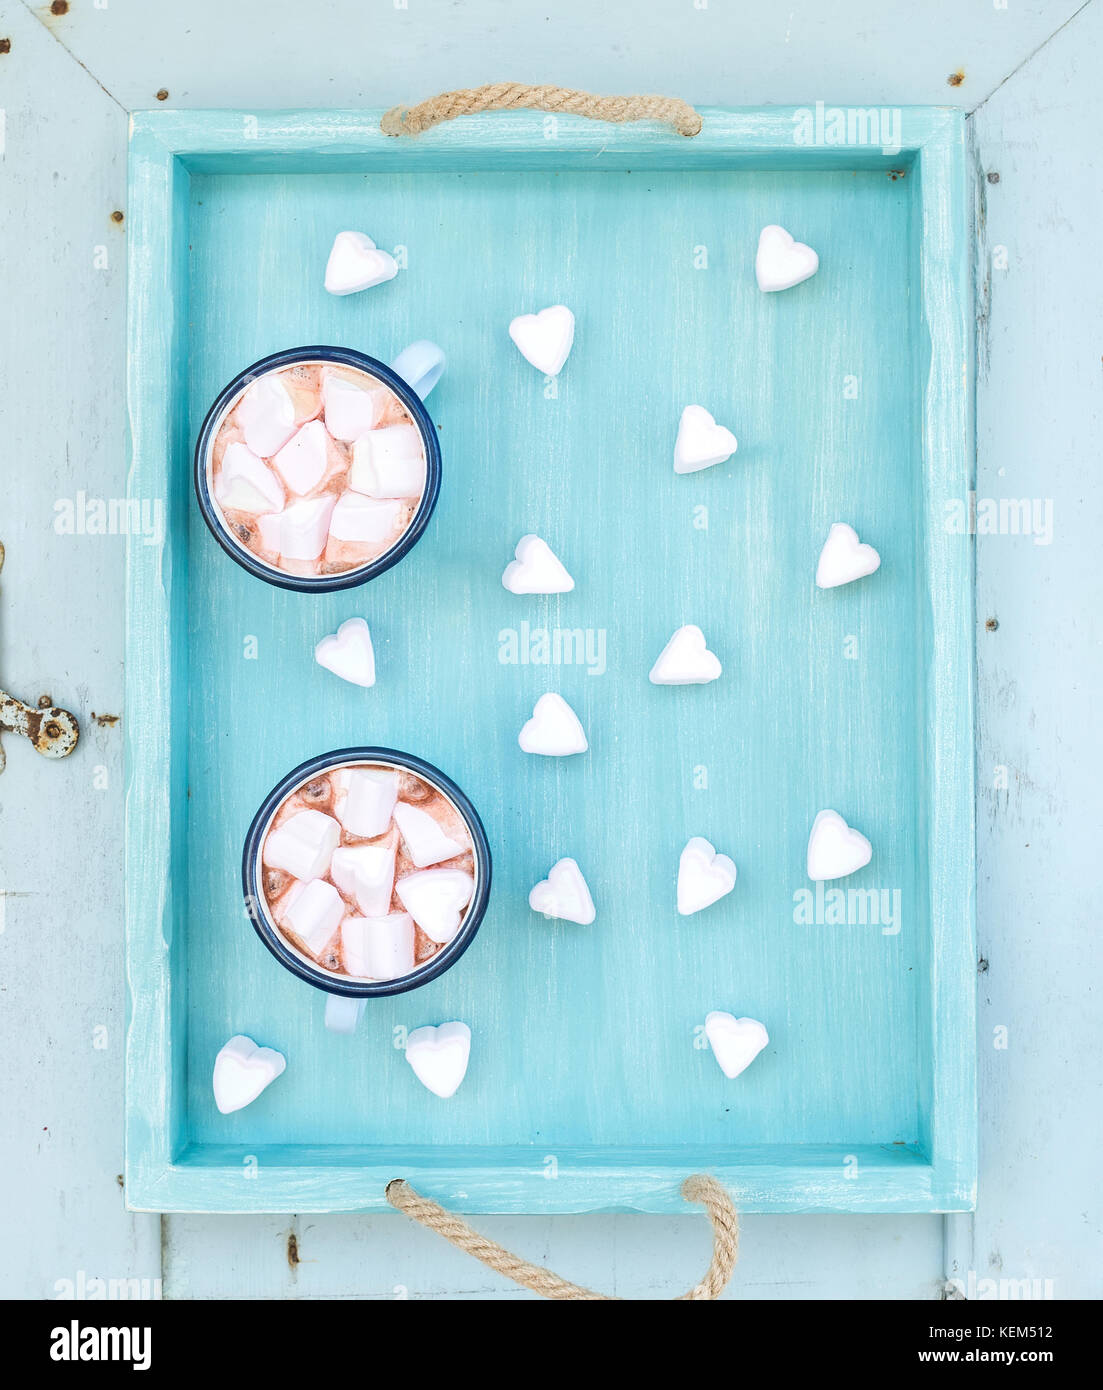 Saint Valentine's holiday greeting set. Hot chocolate and heart shaped marshmallows in old enamel mugs on turquoise - Stock Image